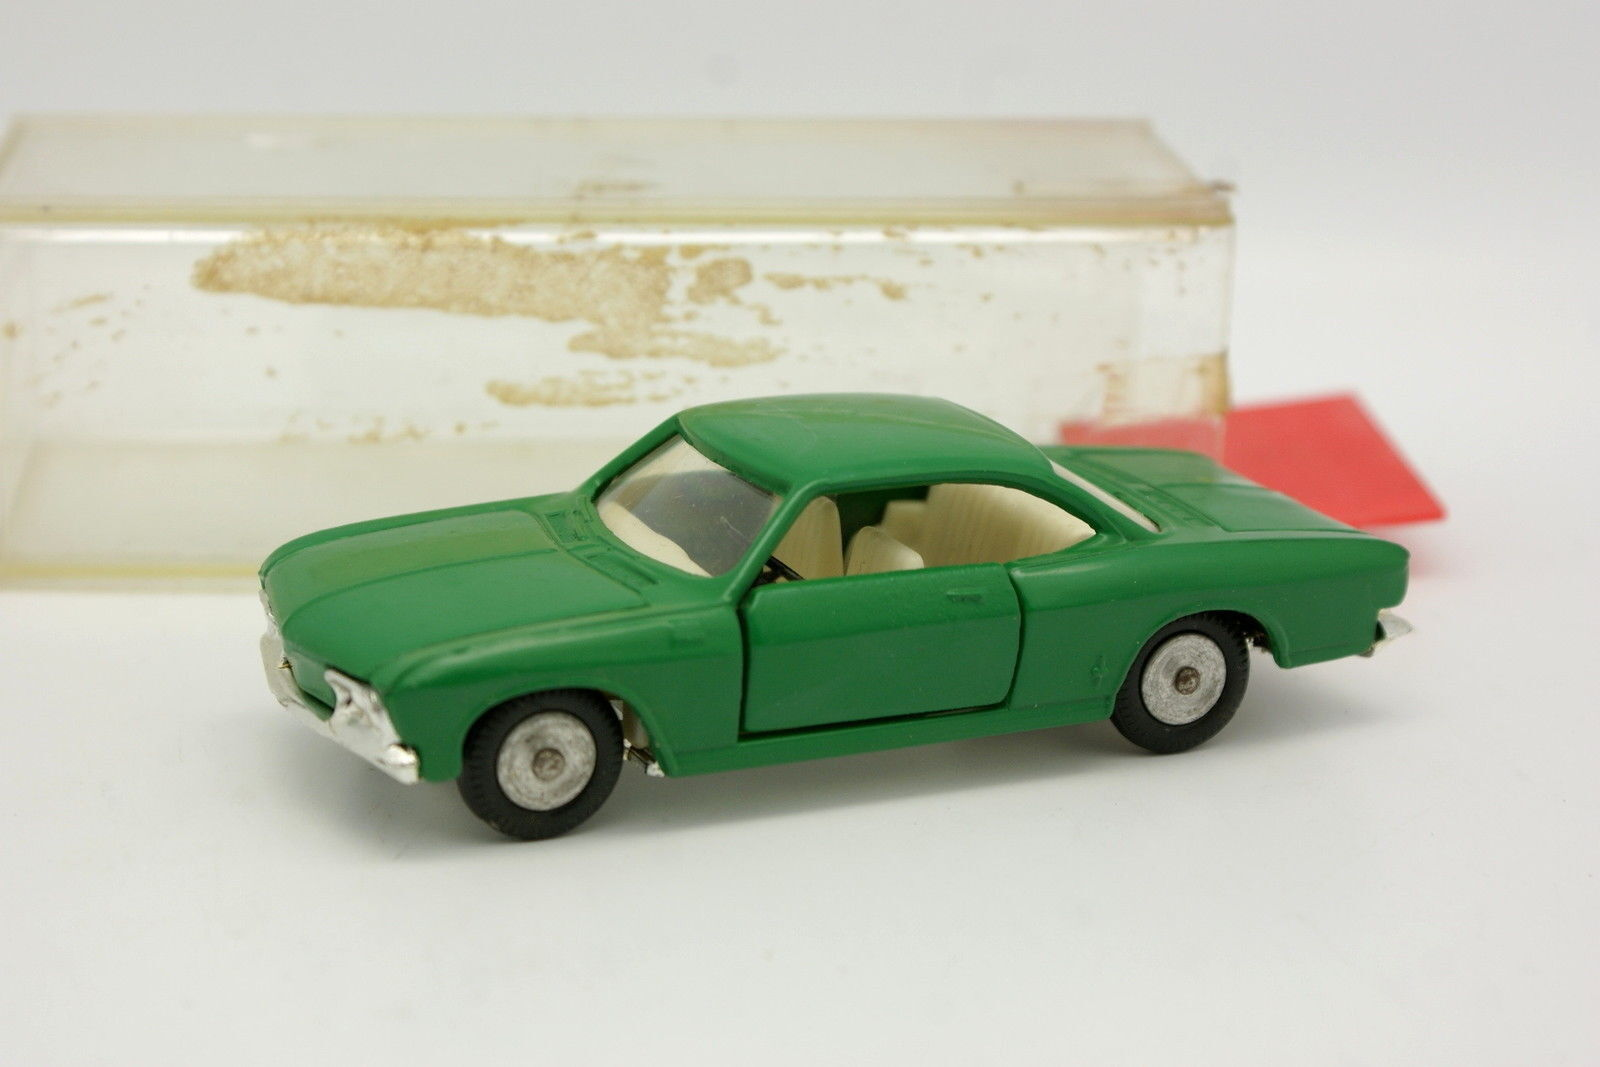 Cragstan 1 43 - CHEVROLET CORVAIR Green